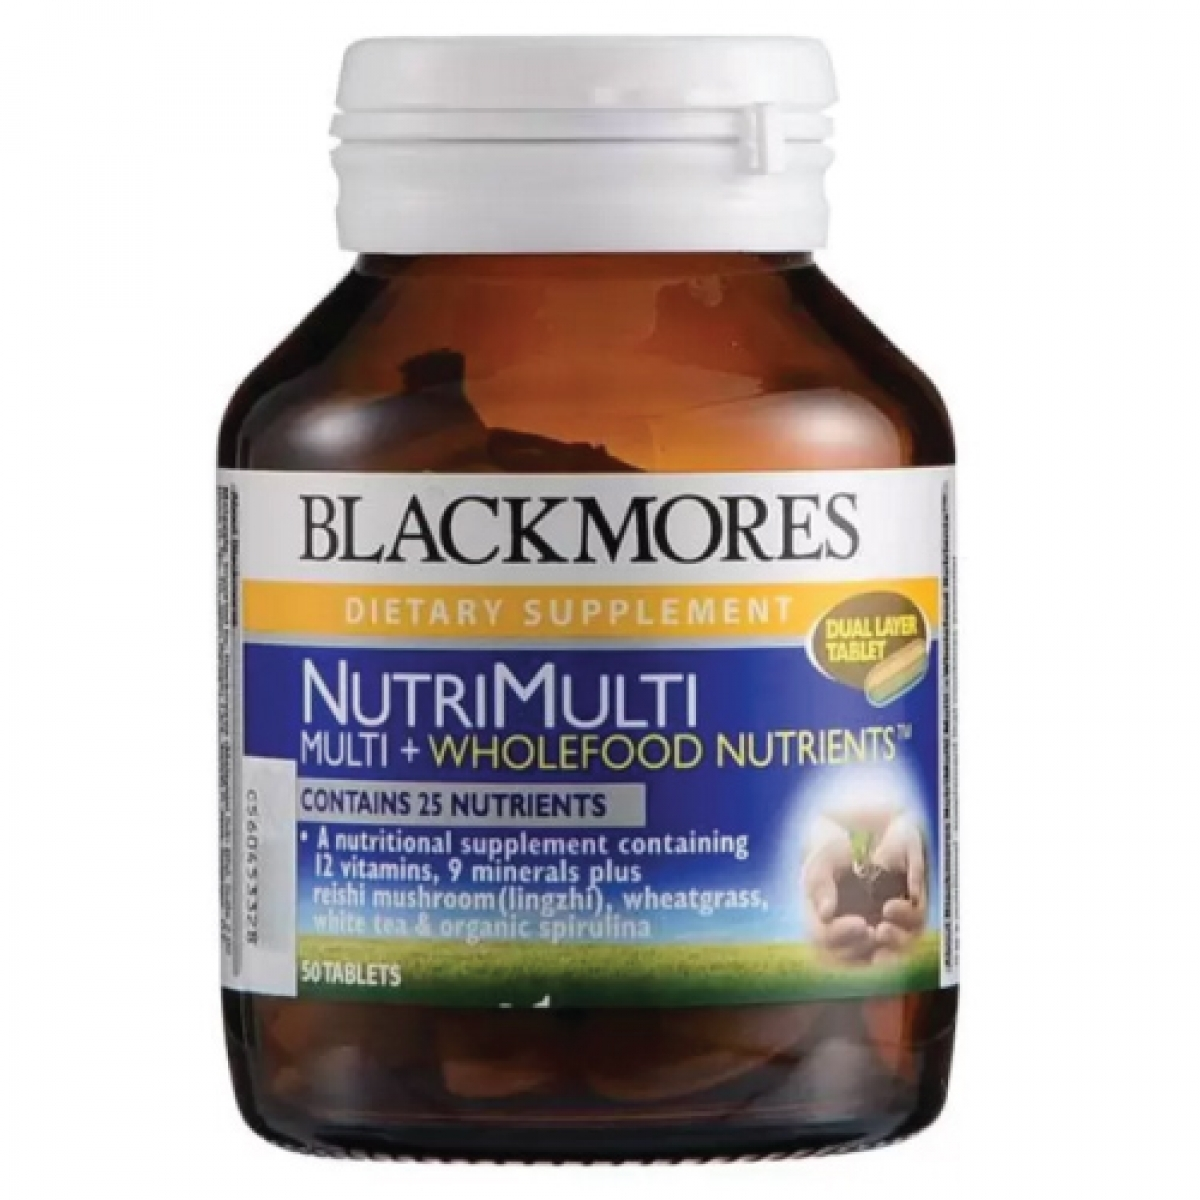 Blackmores NutriMulti Multi + Wholefoods Nutrients™